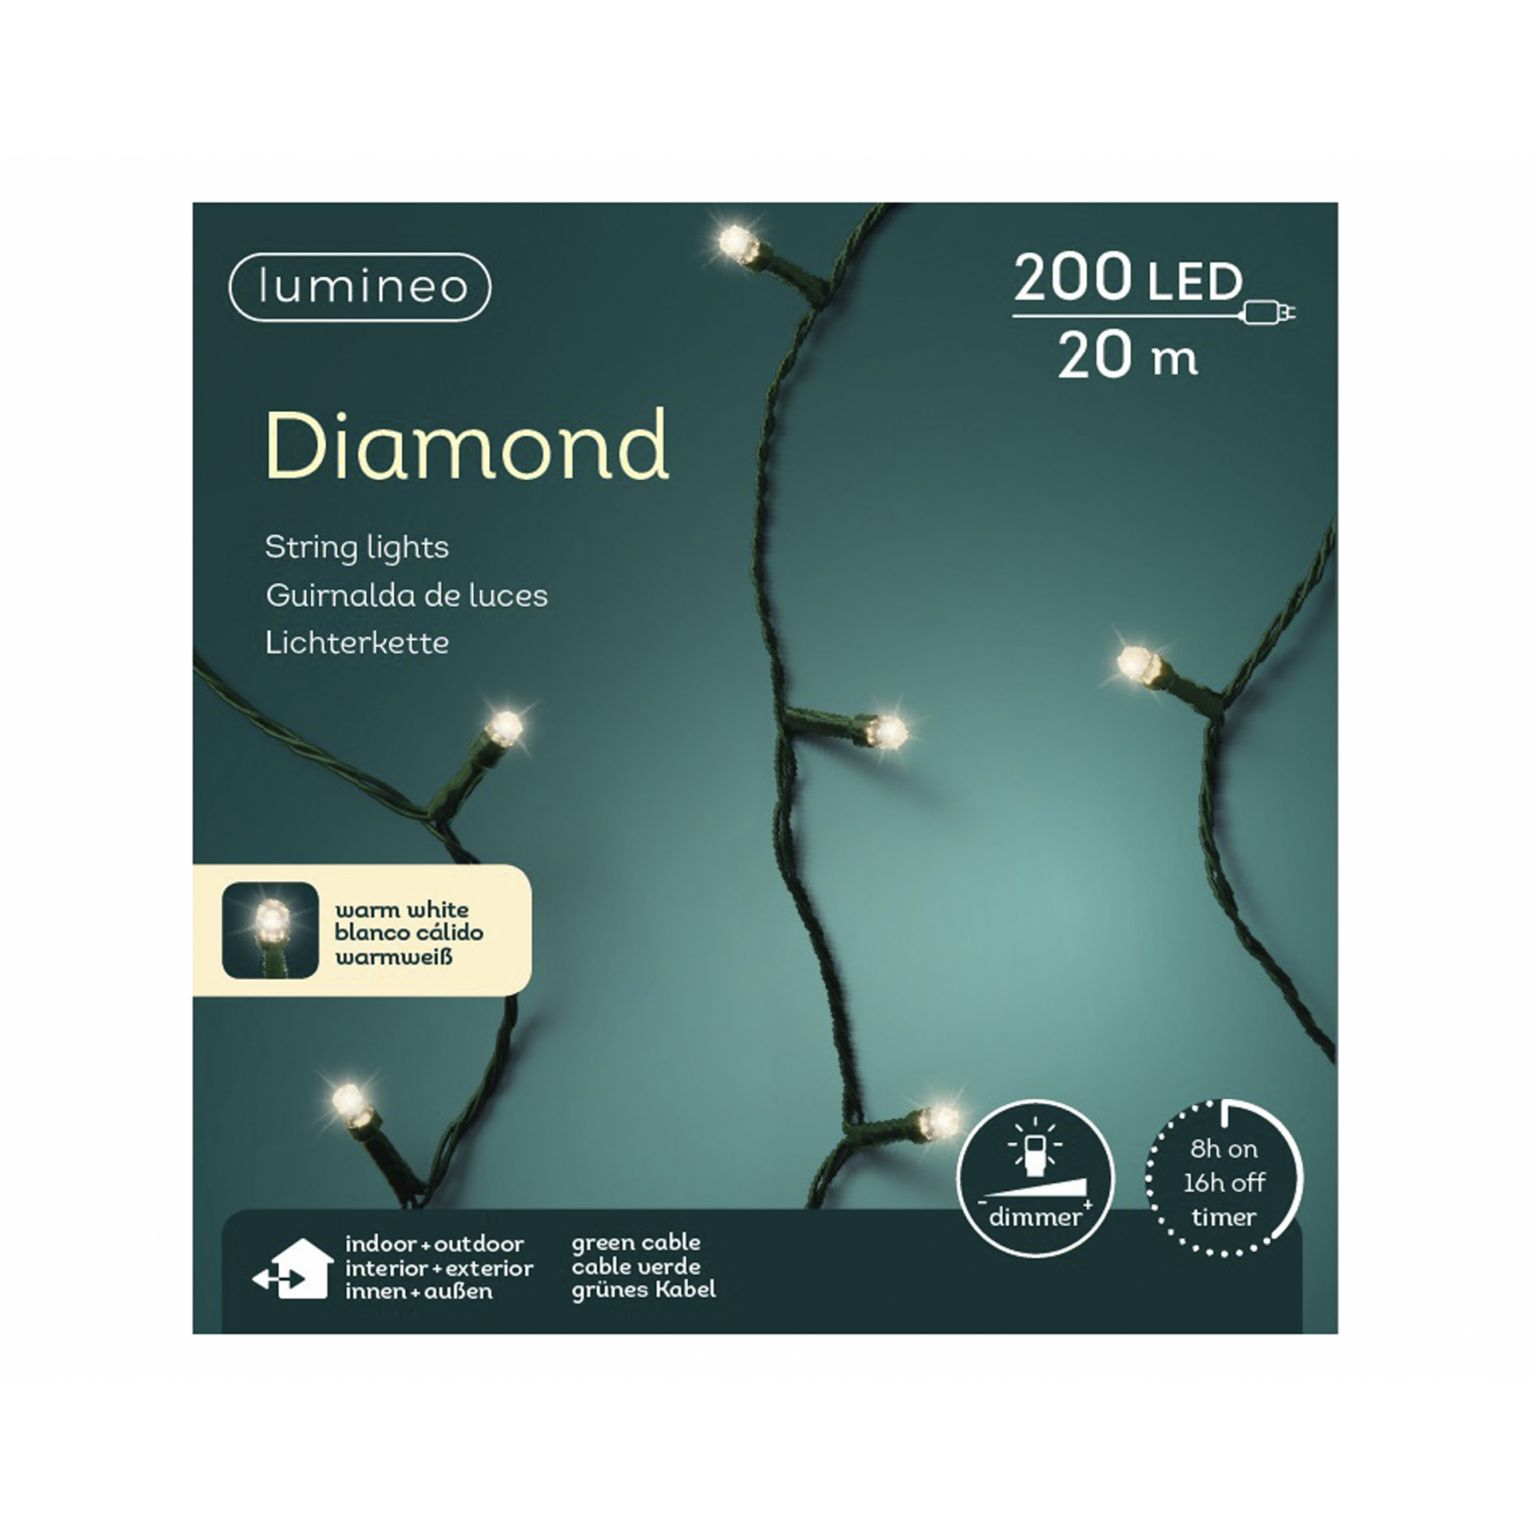 LED diamondverlichting lumineo 200 lamps 'warm wit